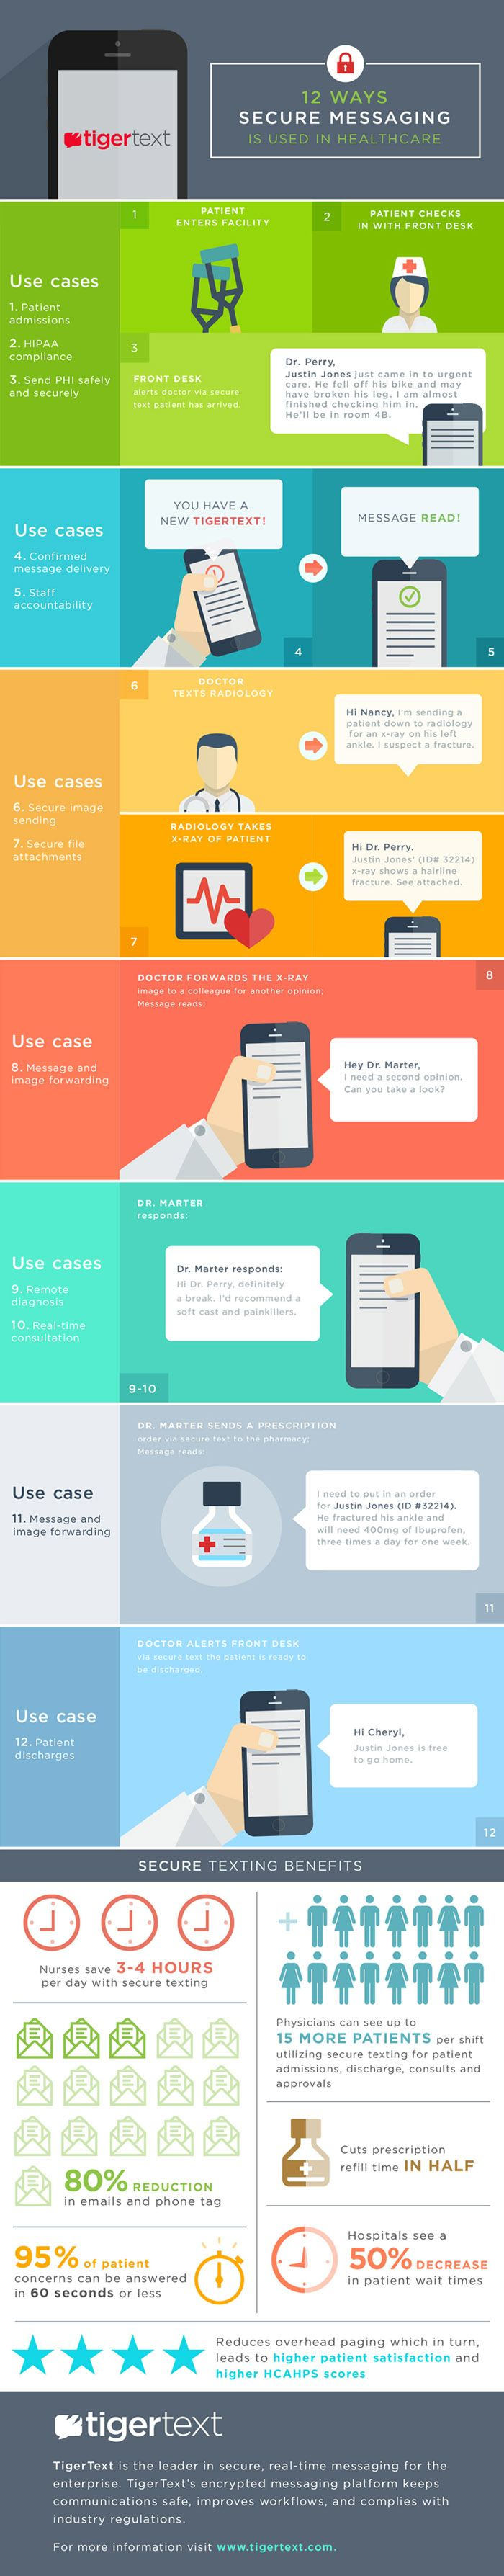 12 ways secure messaging is used in healthcare